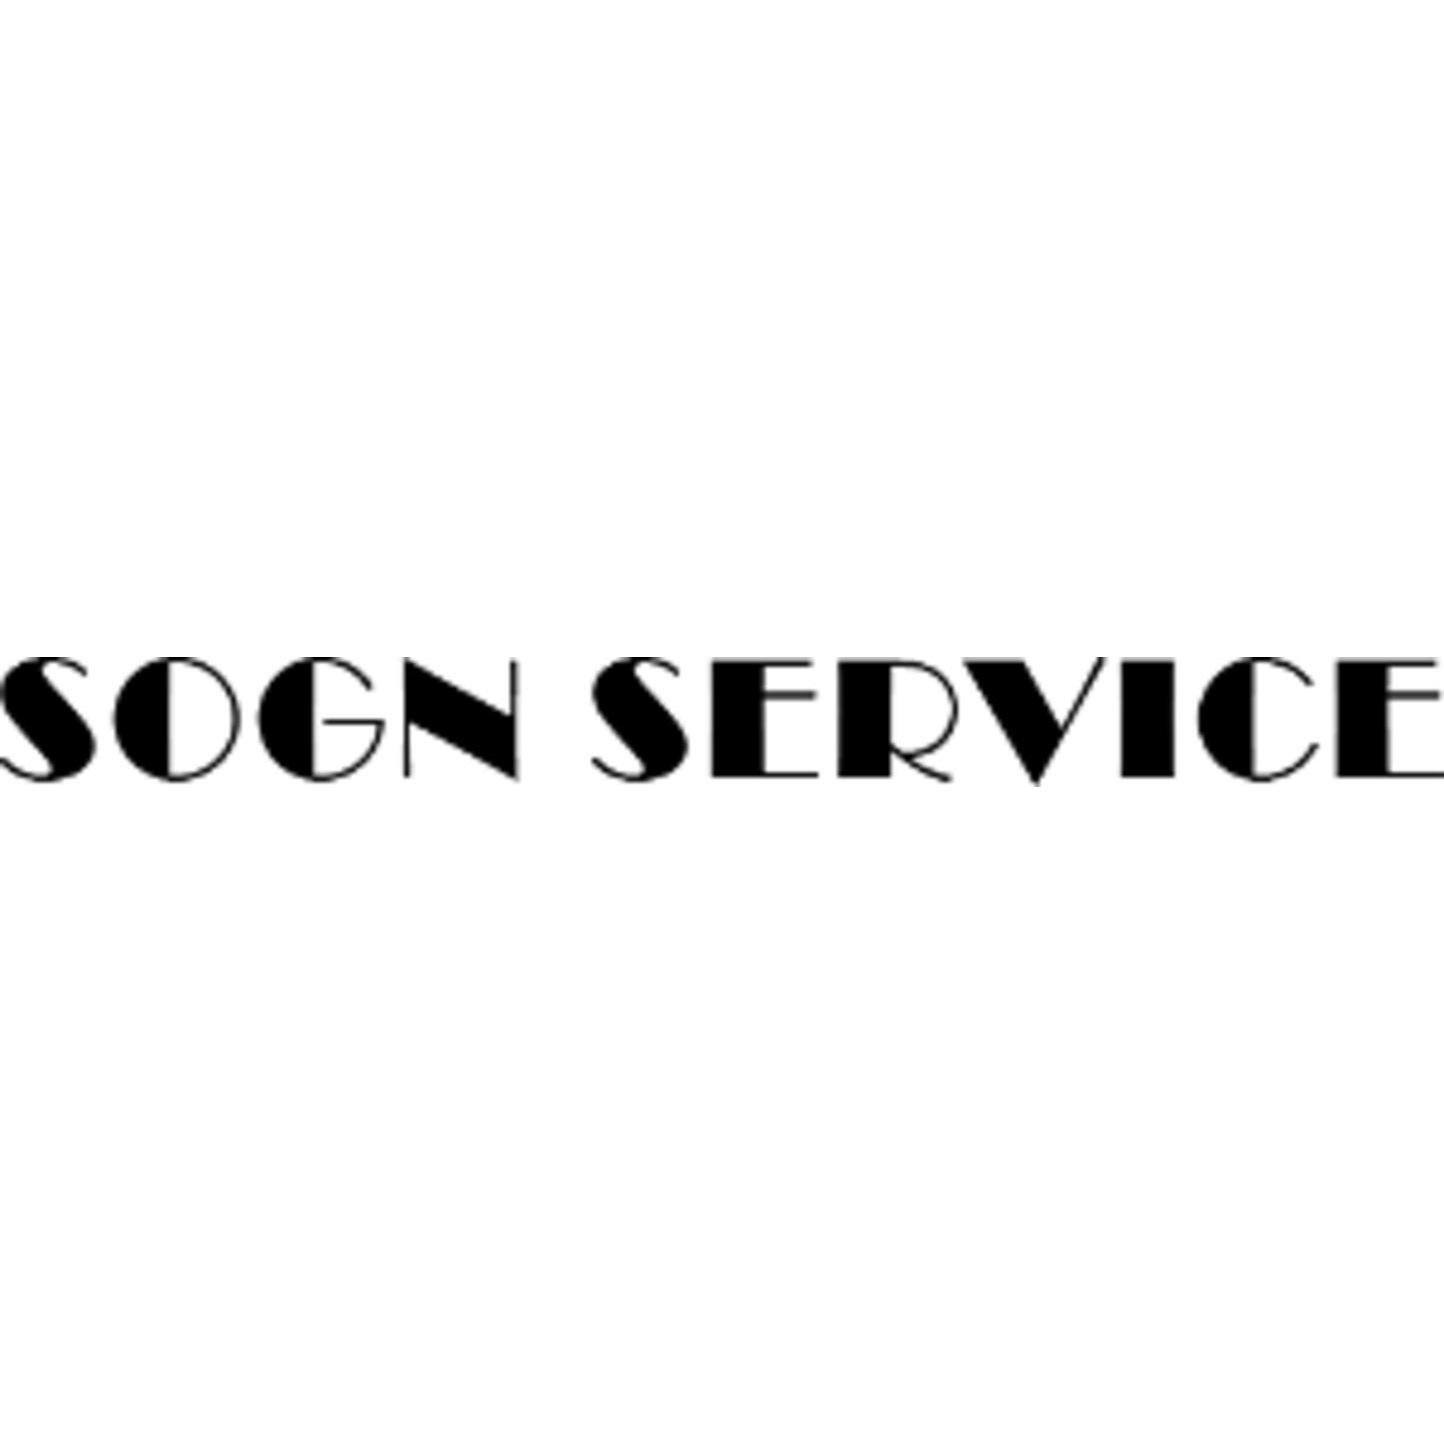 Sogn Service AS